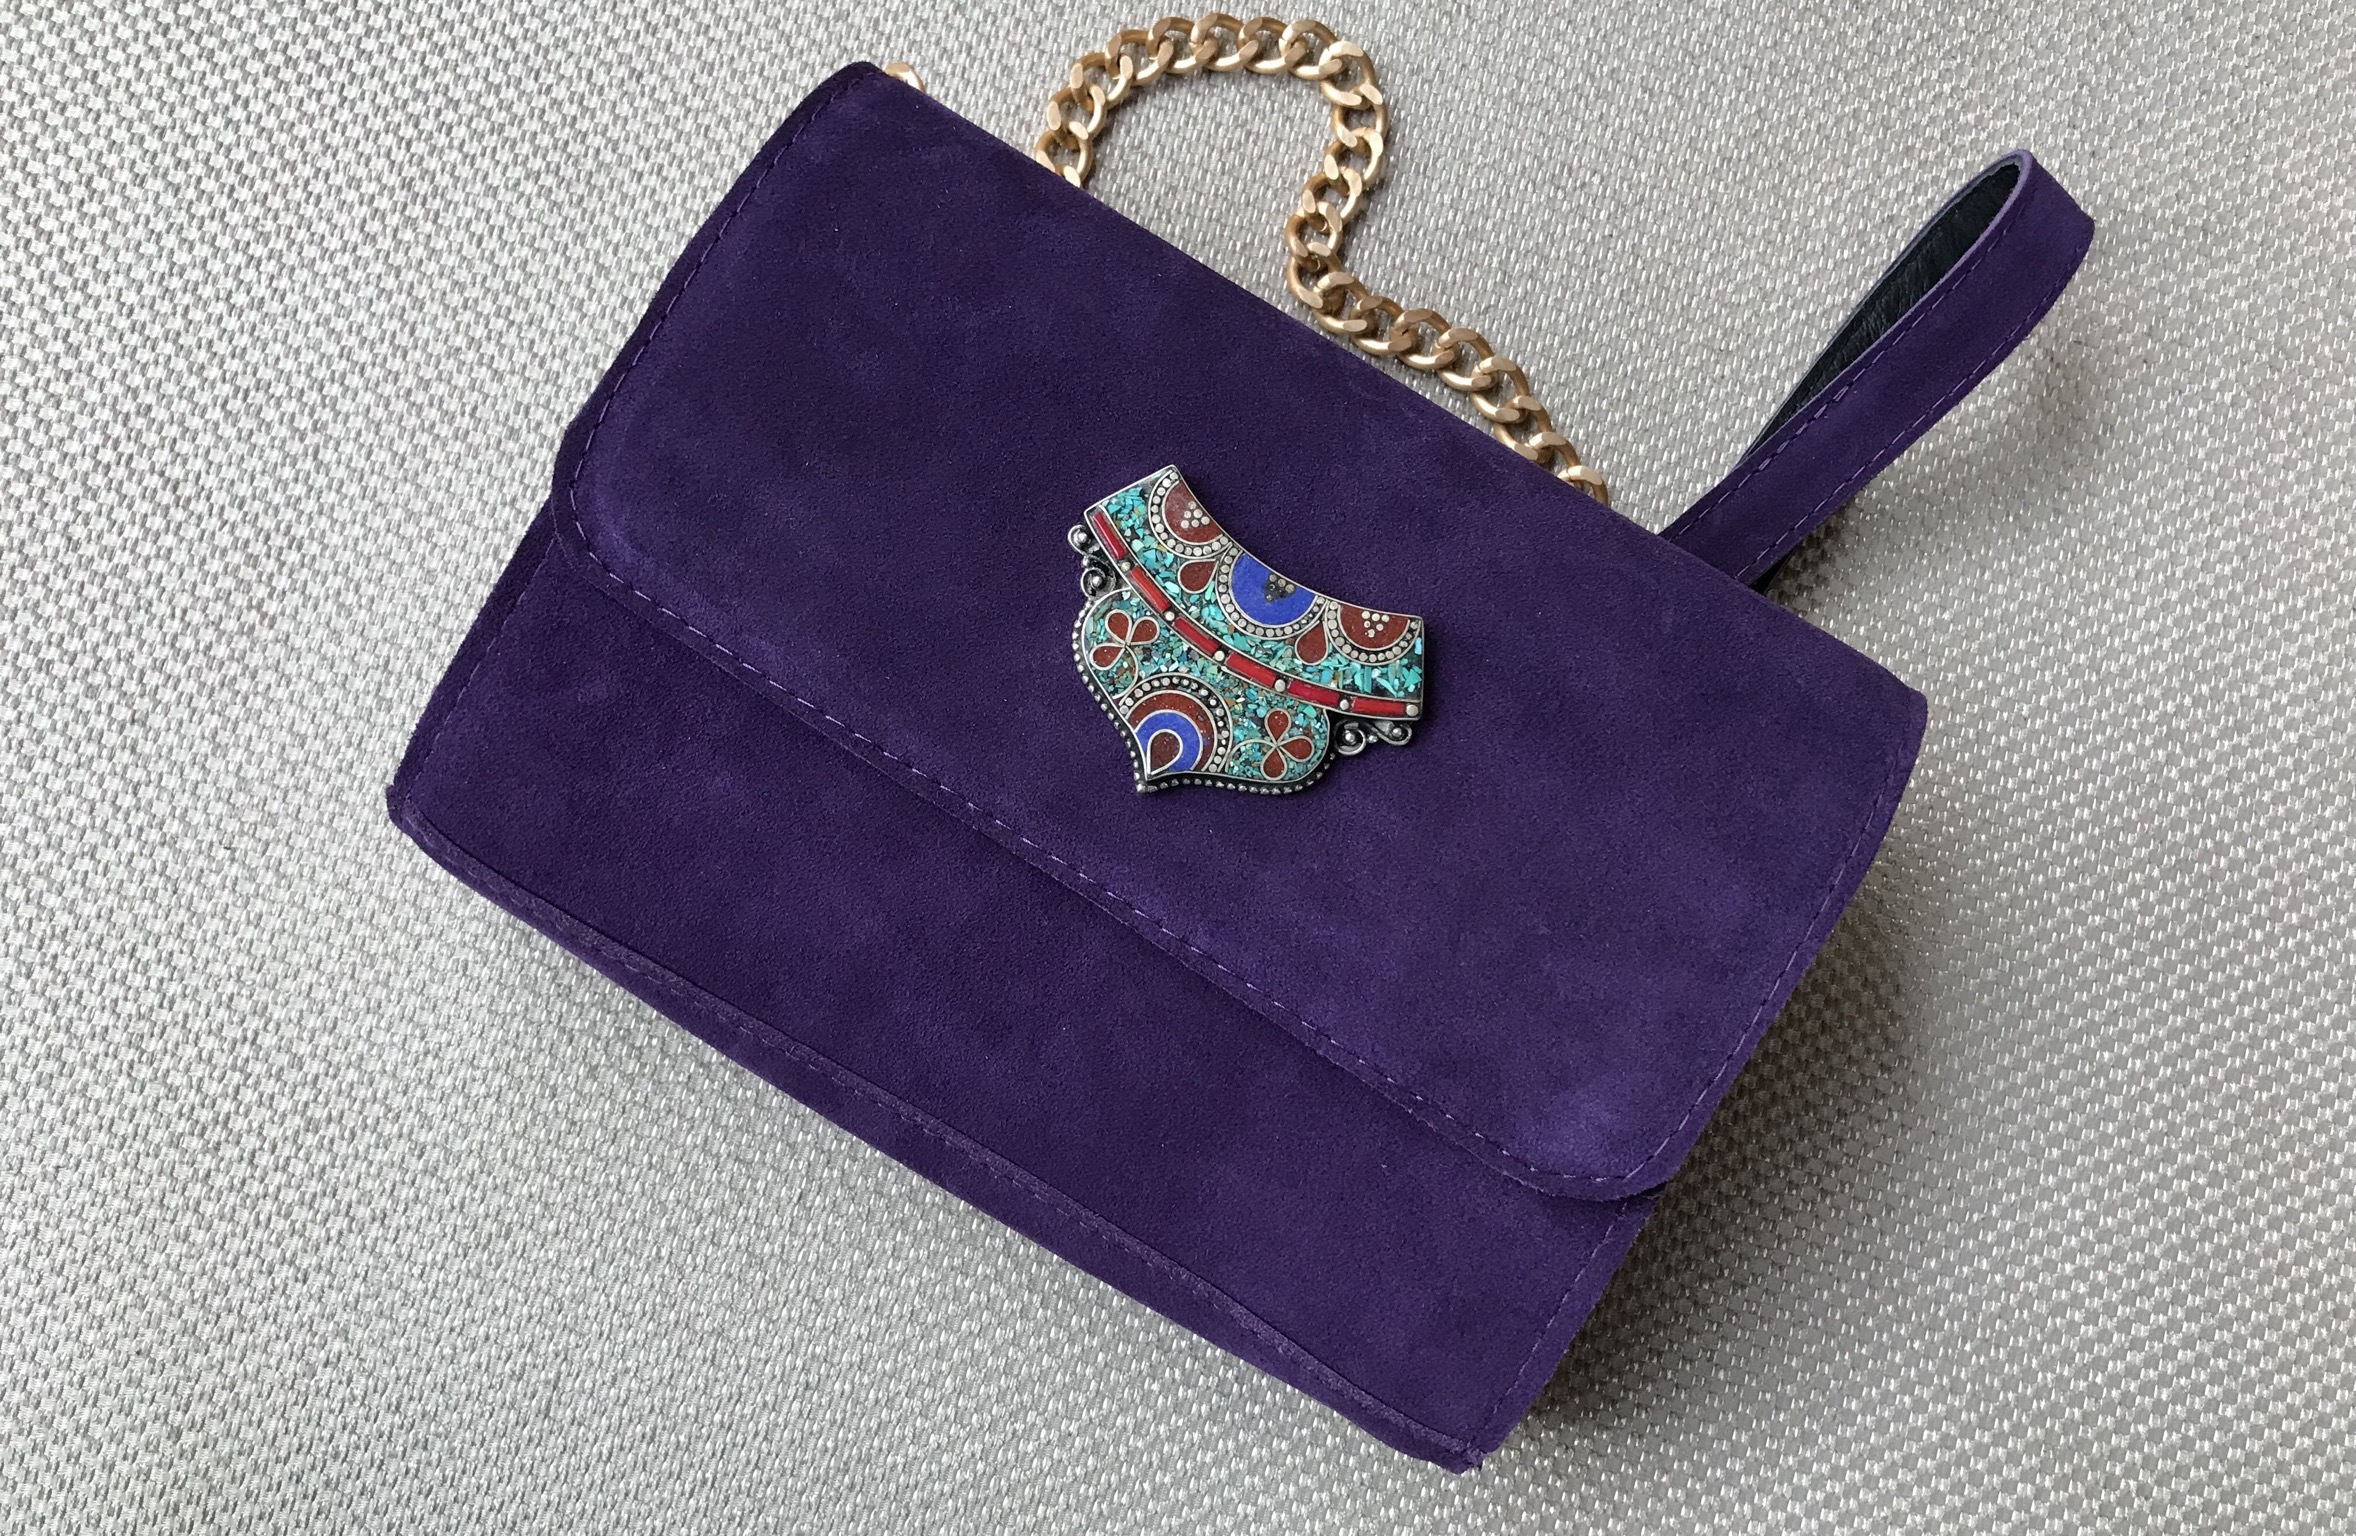 Bag suede leather purple with artisanal jewelry